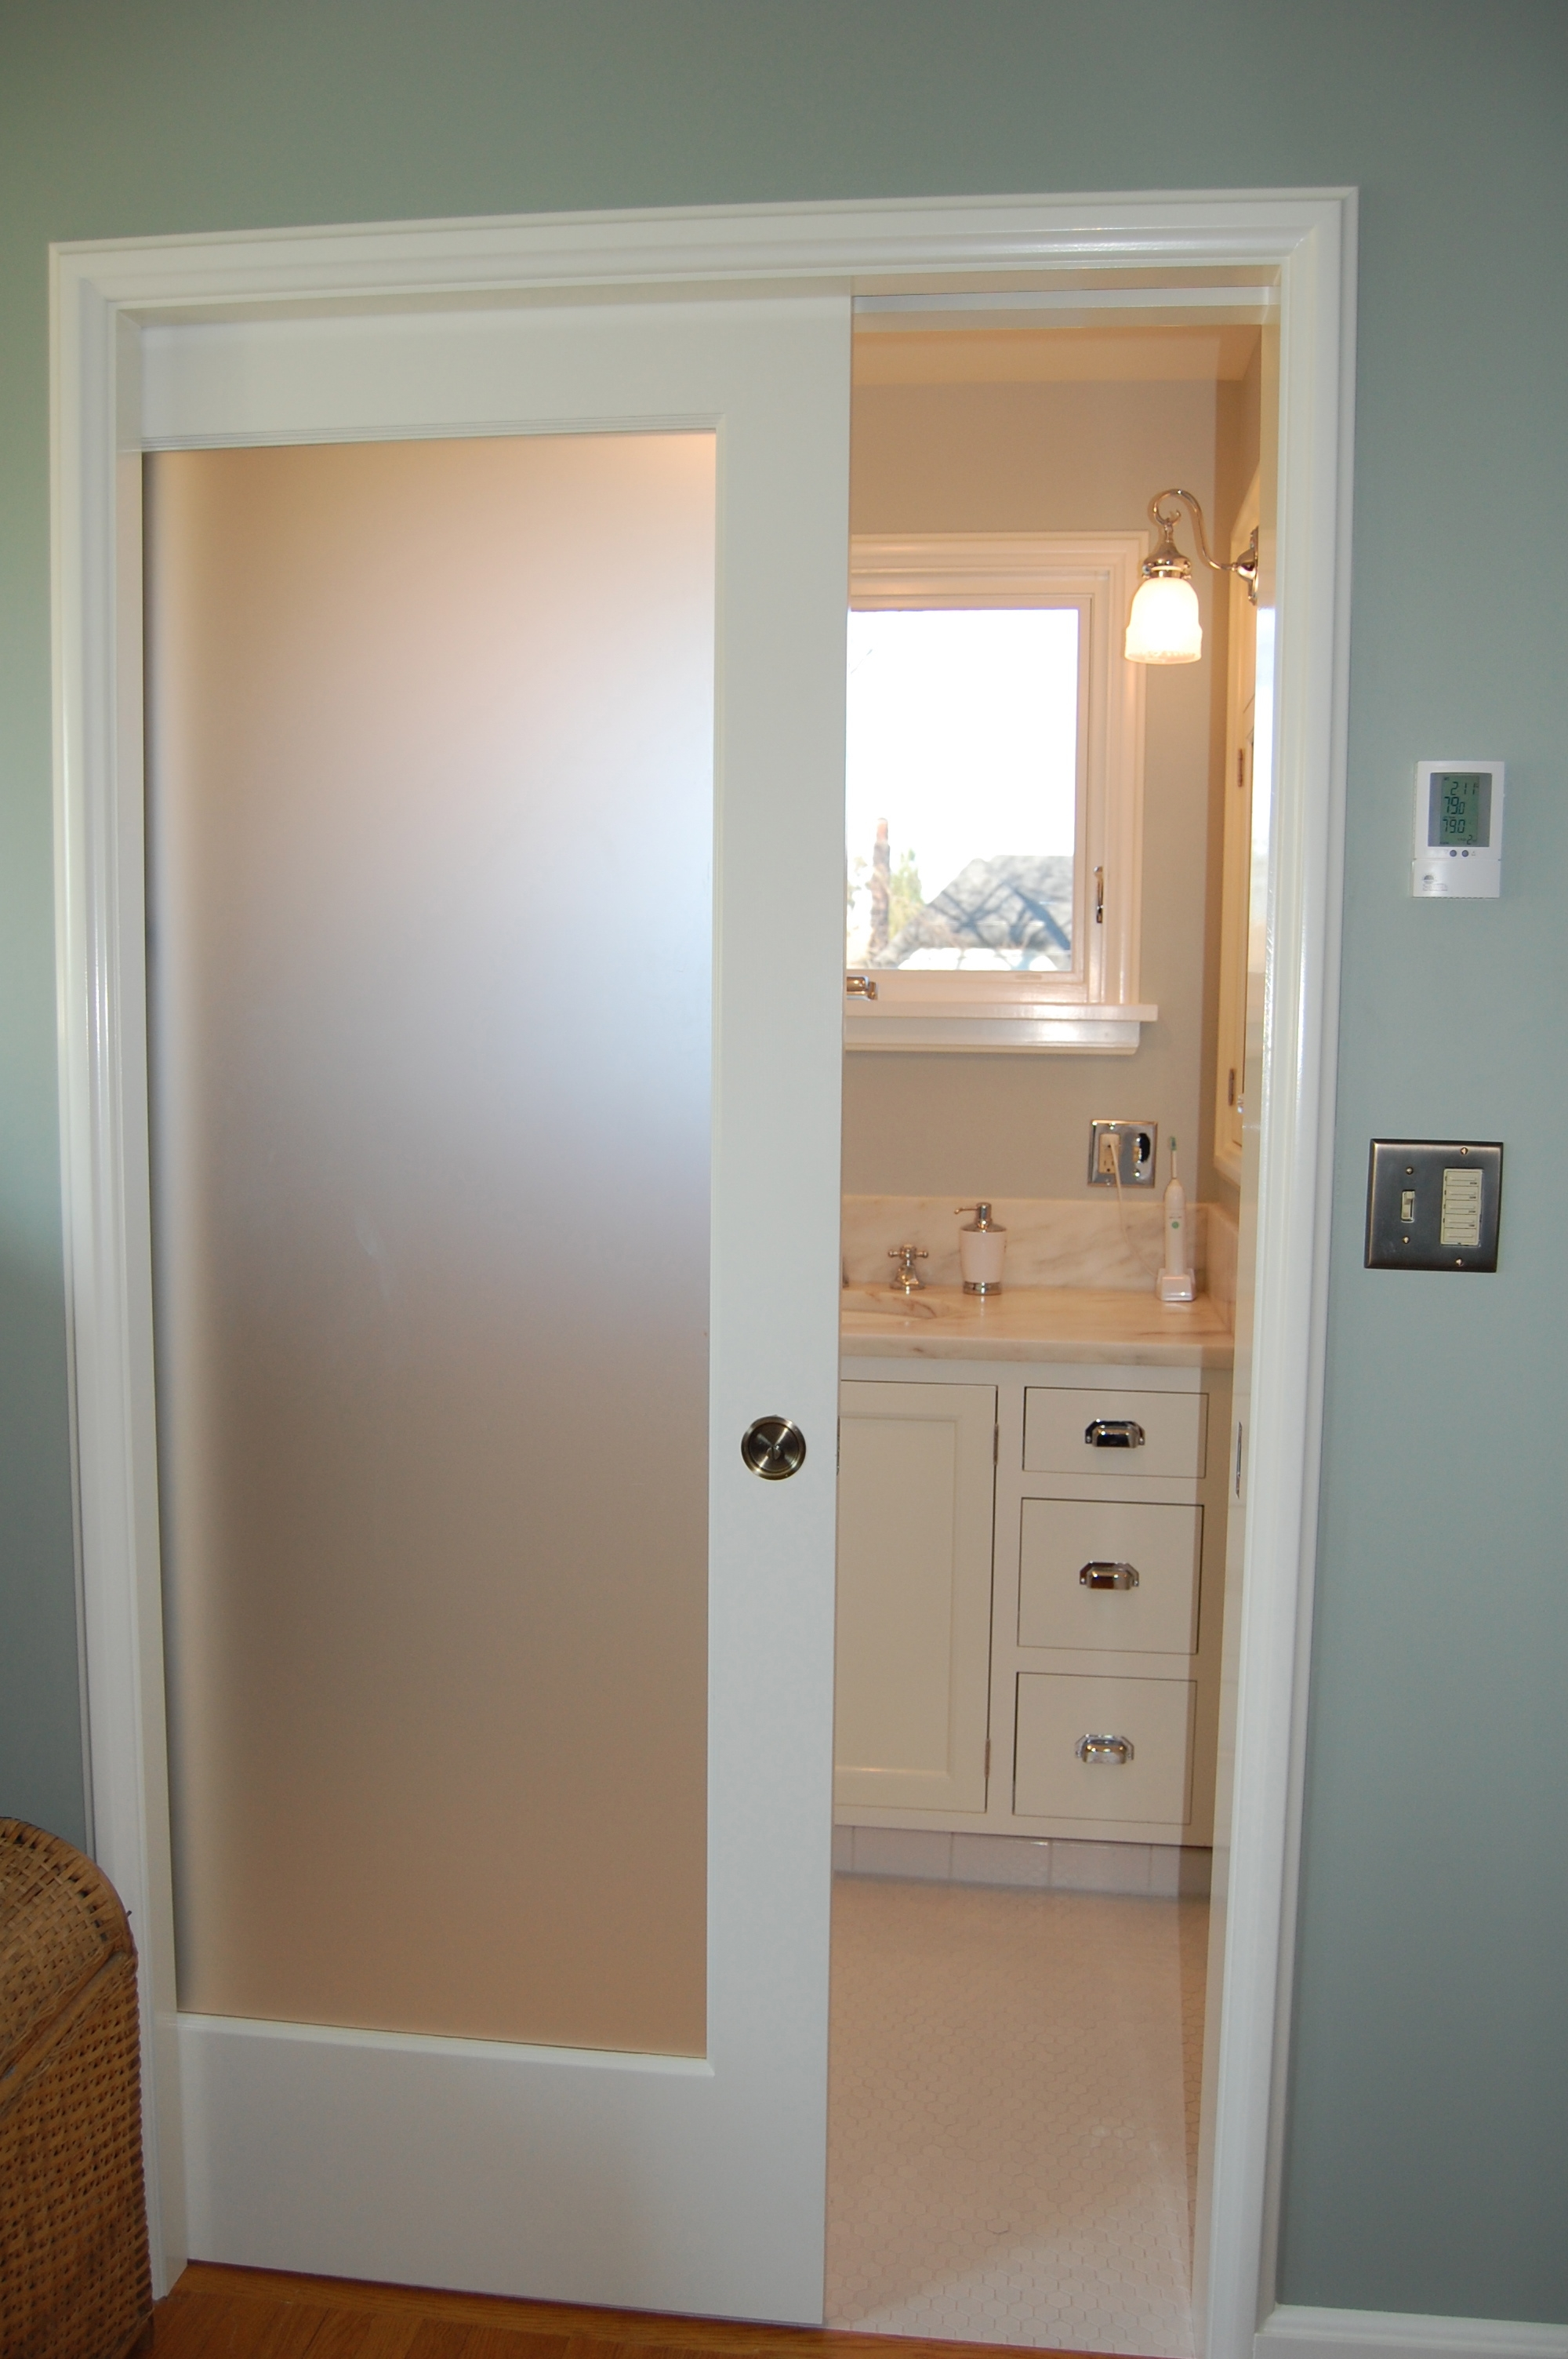 Interior Glass Sliding Pocket Door For Bathrooms